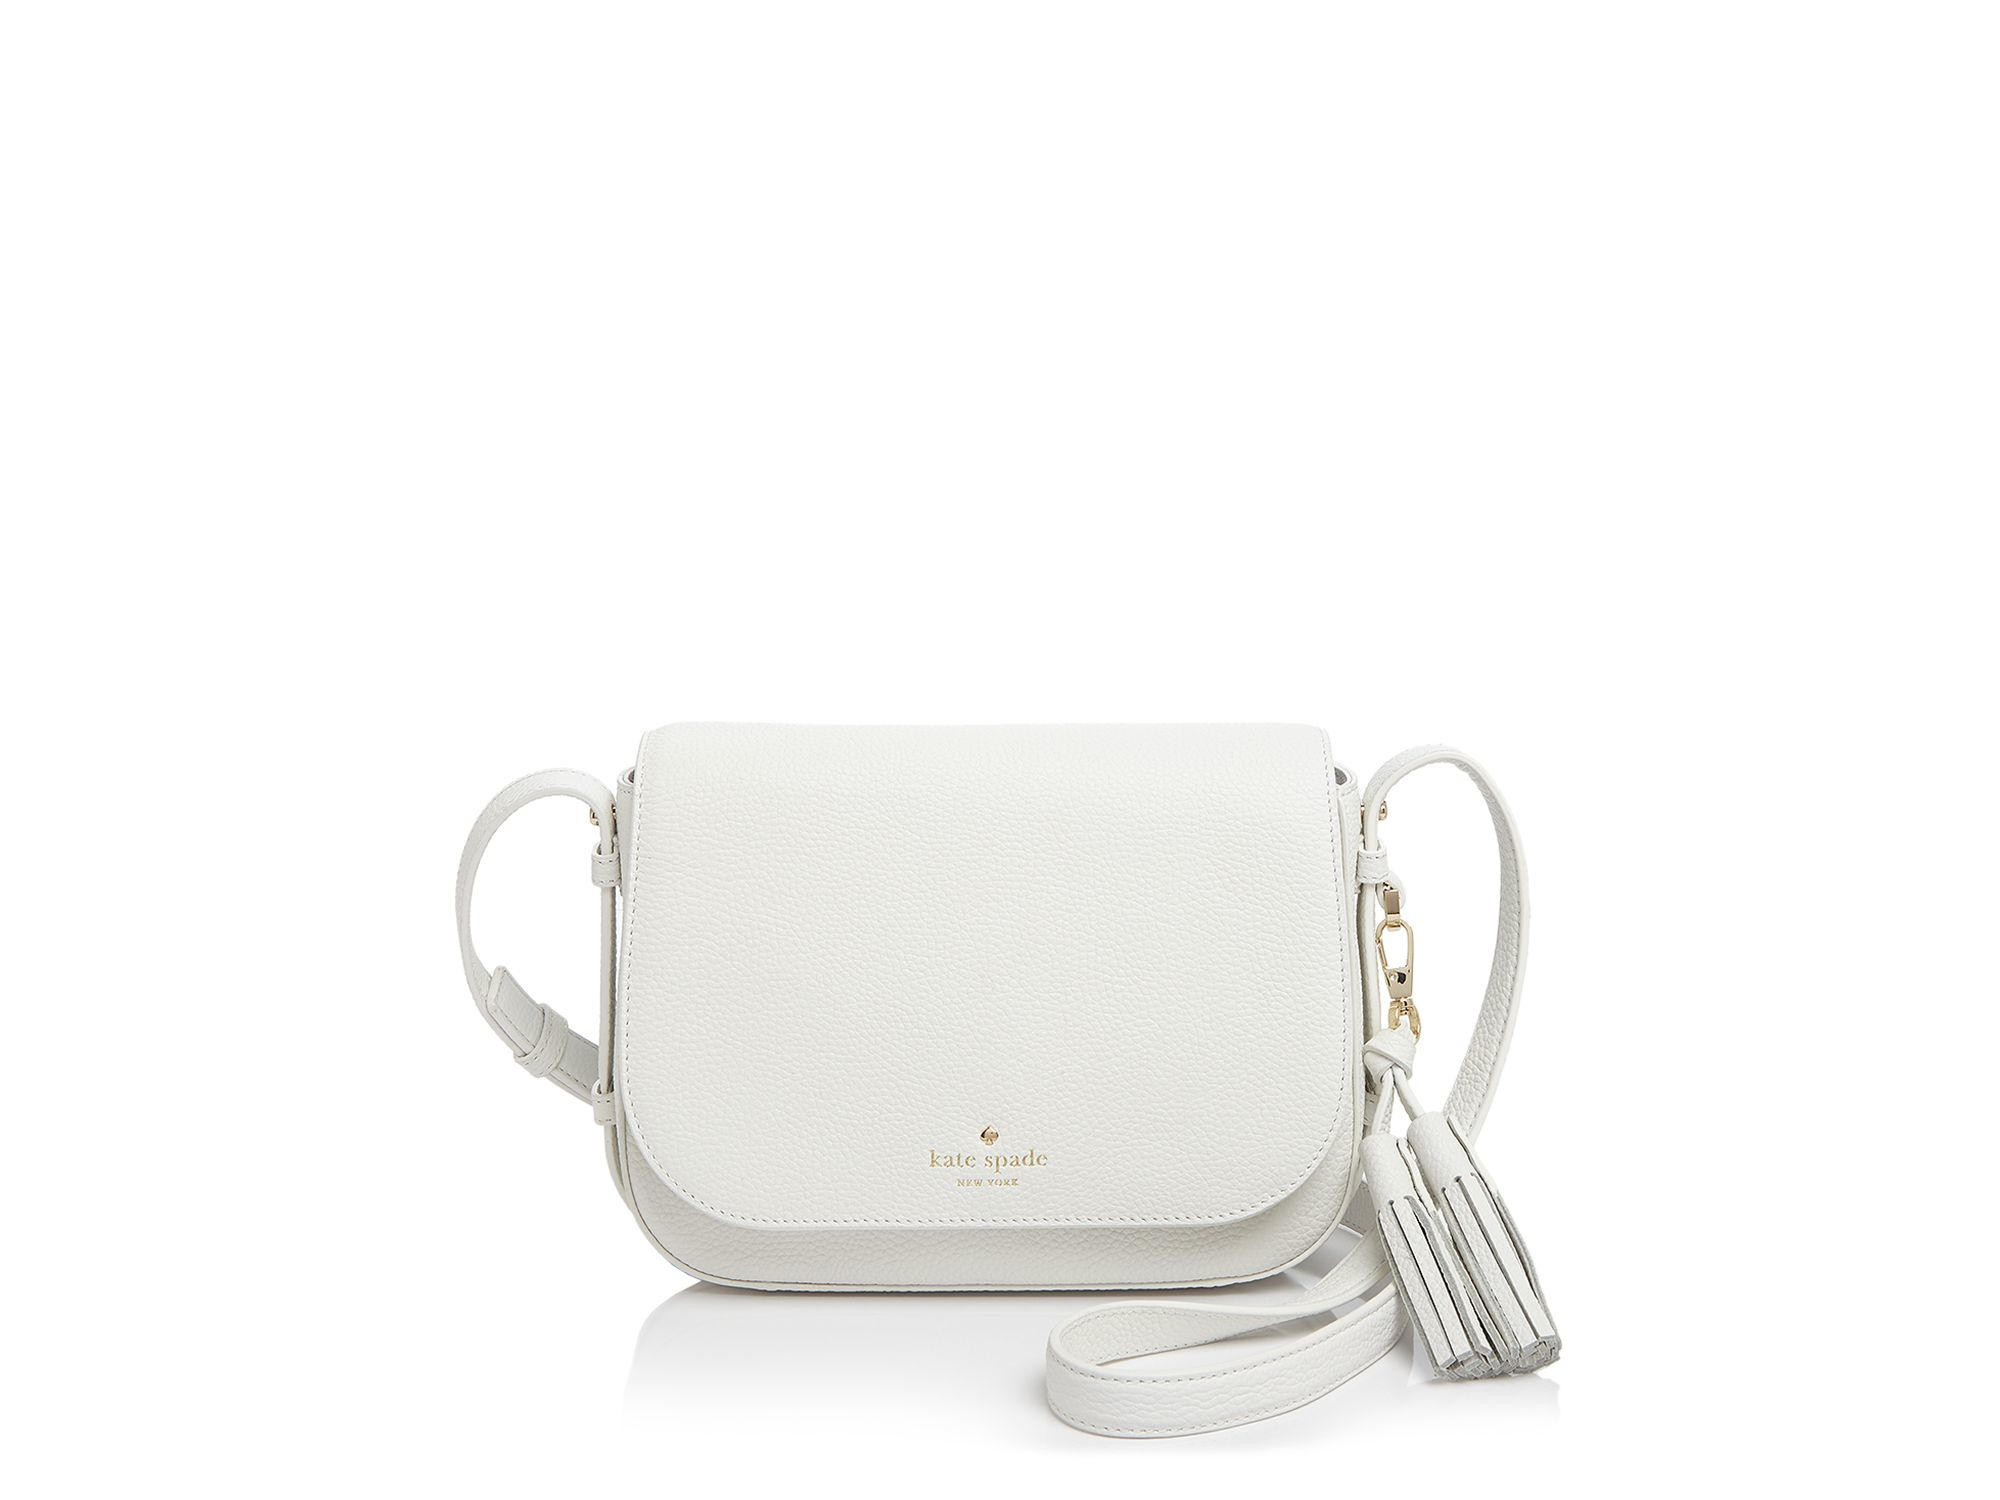 7e40a66ce Kate Spade Orchard Street Penelope Crossbody in White - Lyst